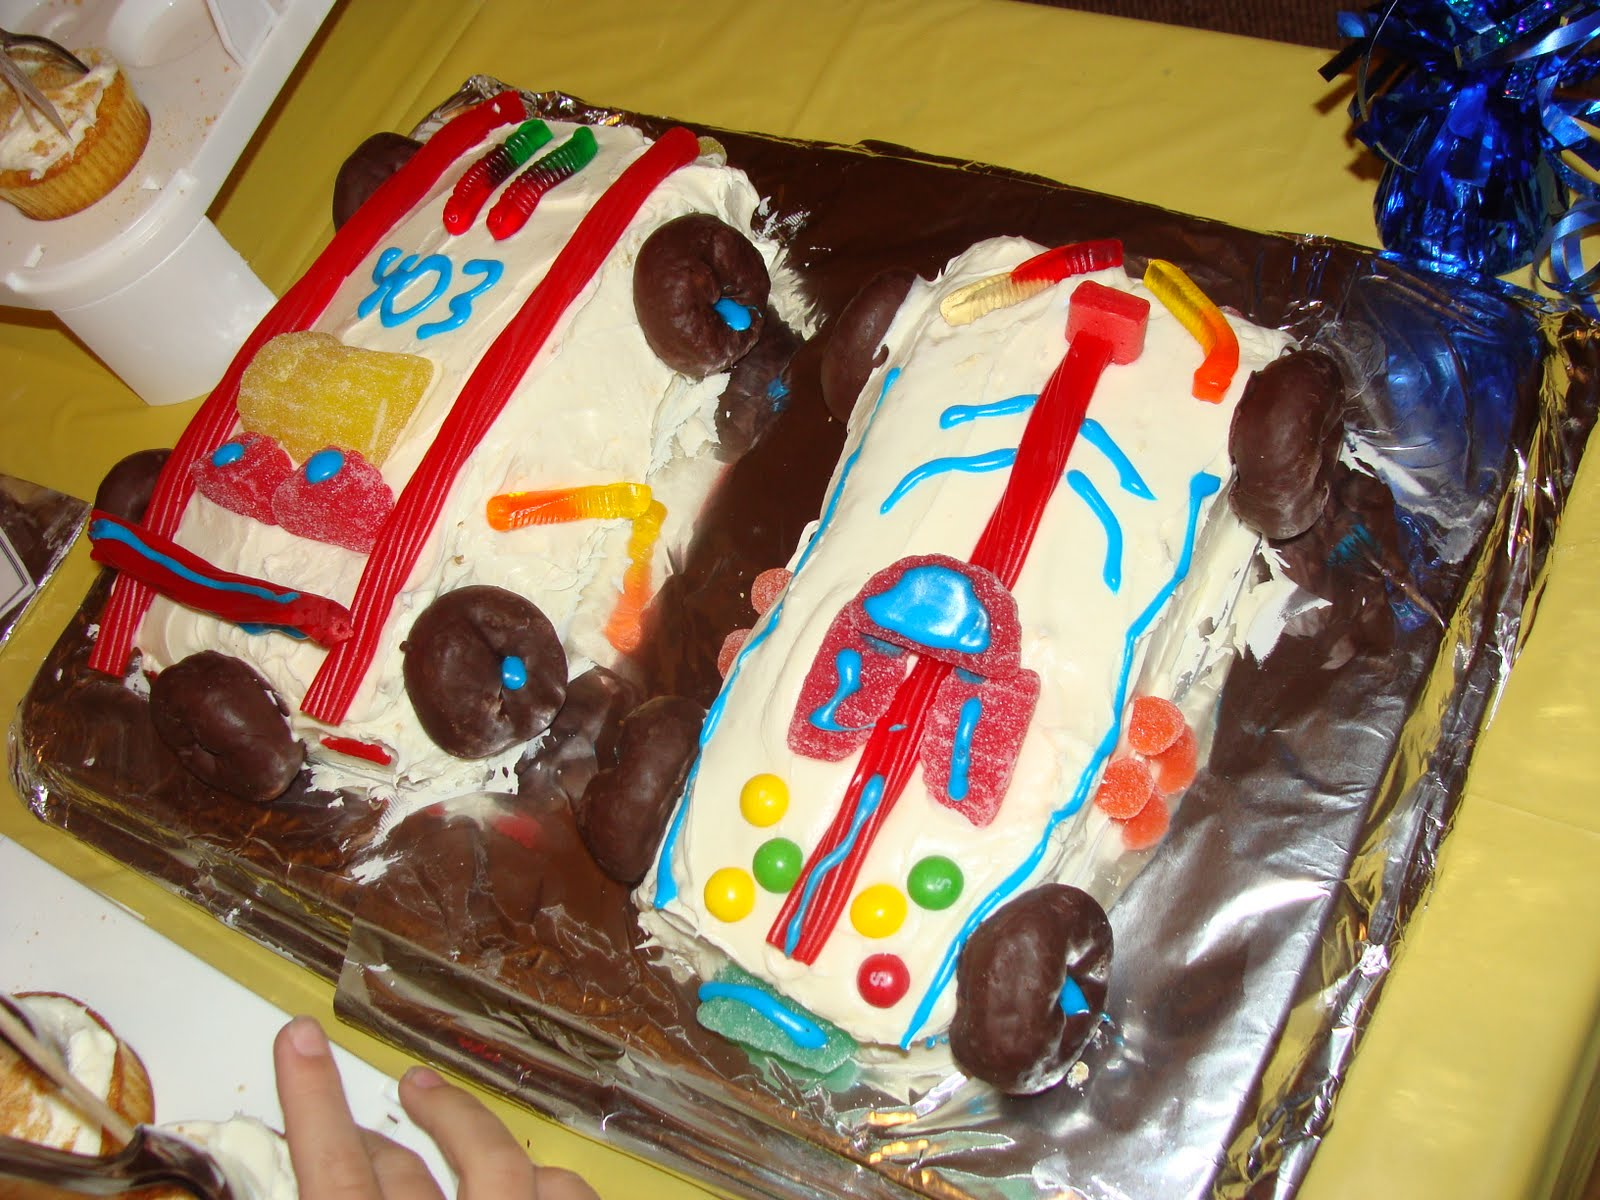 Robot cakes since we decorated for the Blue & Gold Dinner with robots